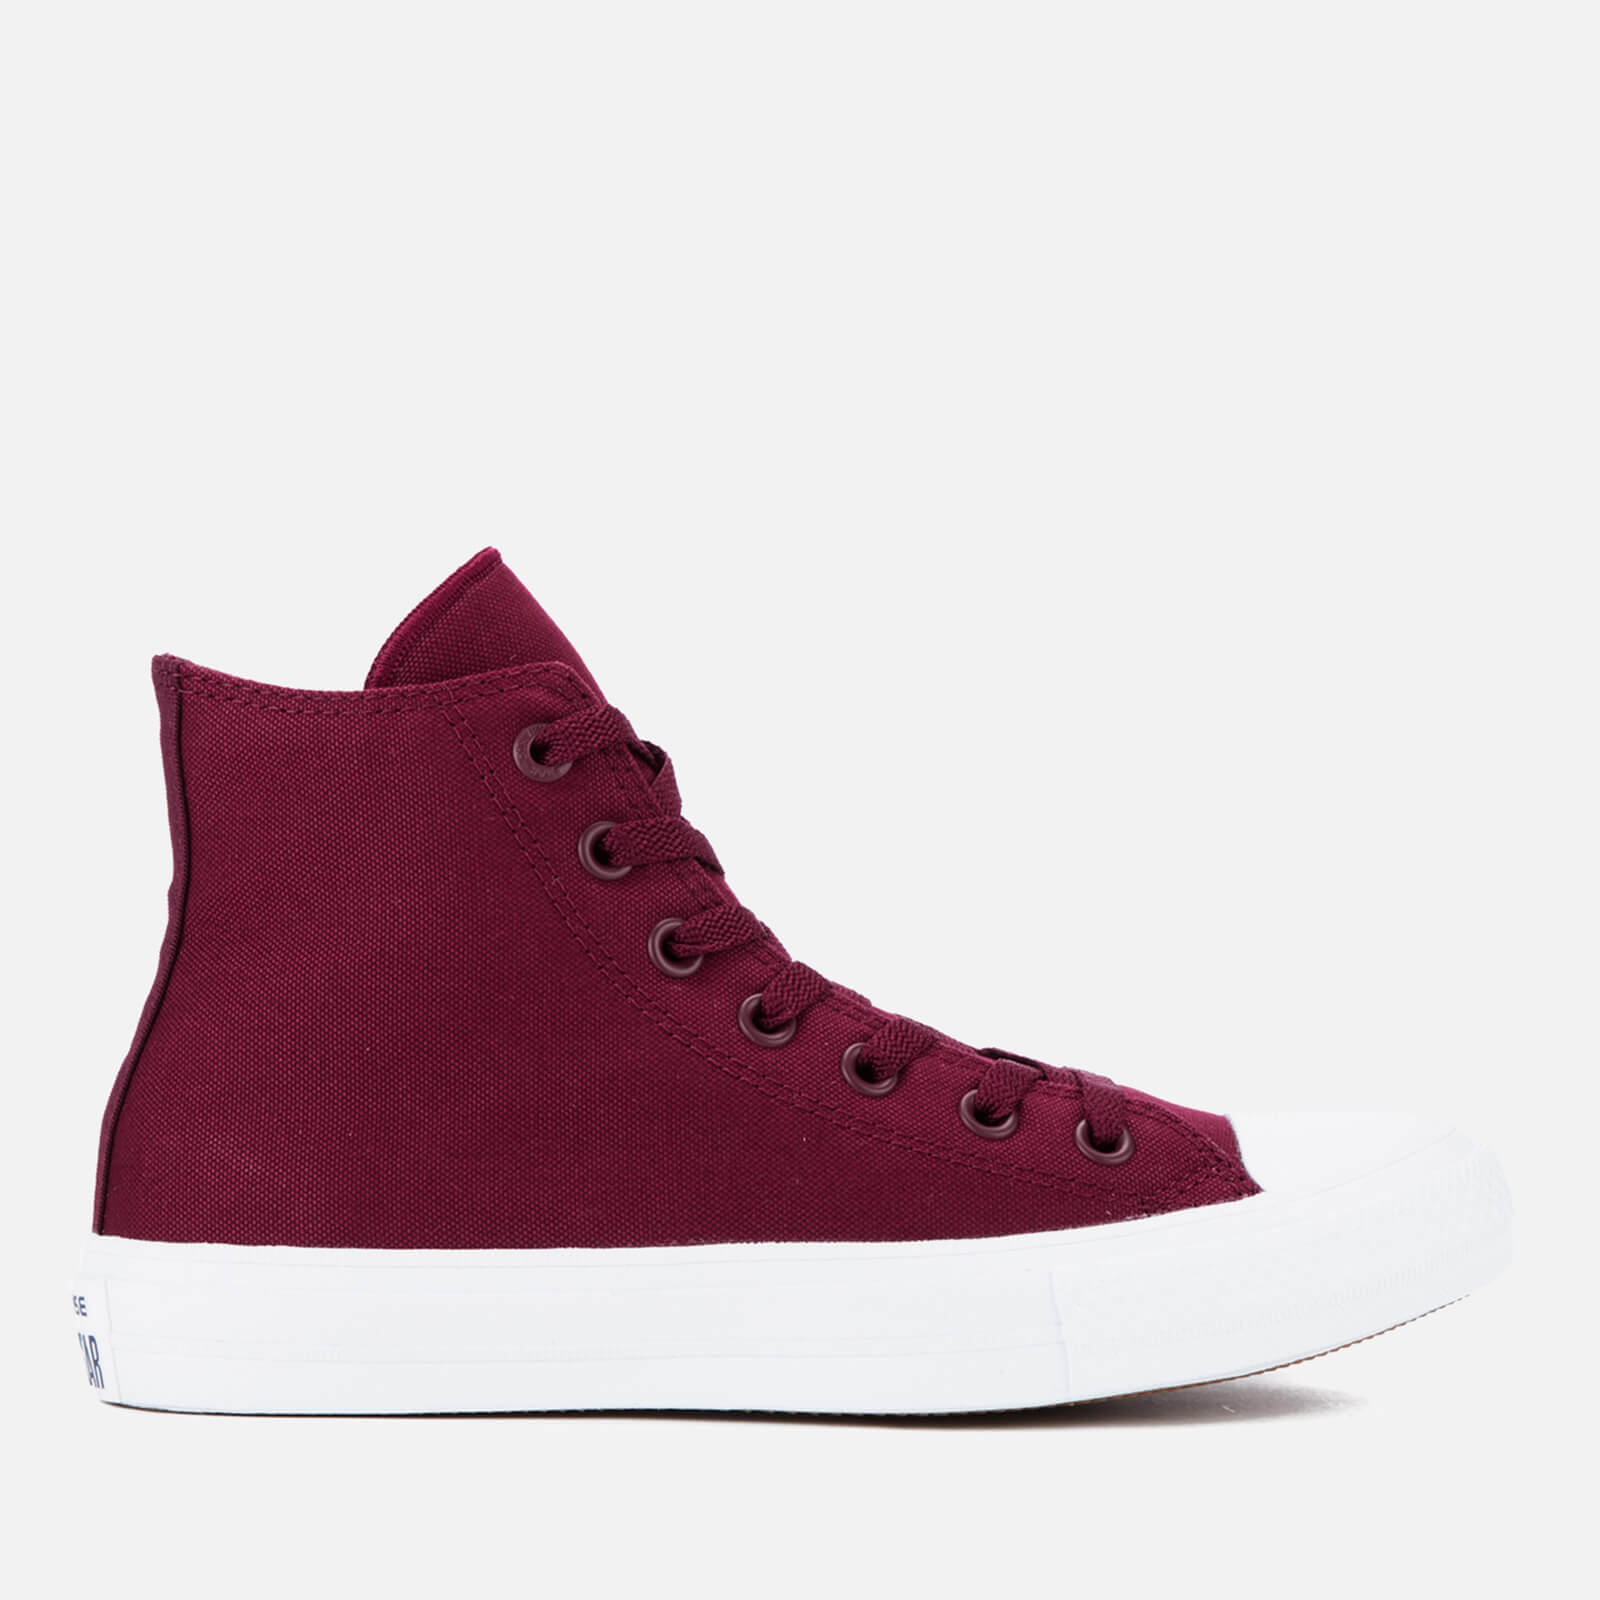 97038a224b8222 ... Converse Chuck Taylor All Star II Hi-Top Trainers - Deep Bordeaux White